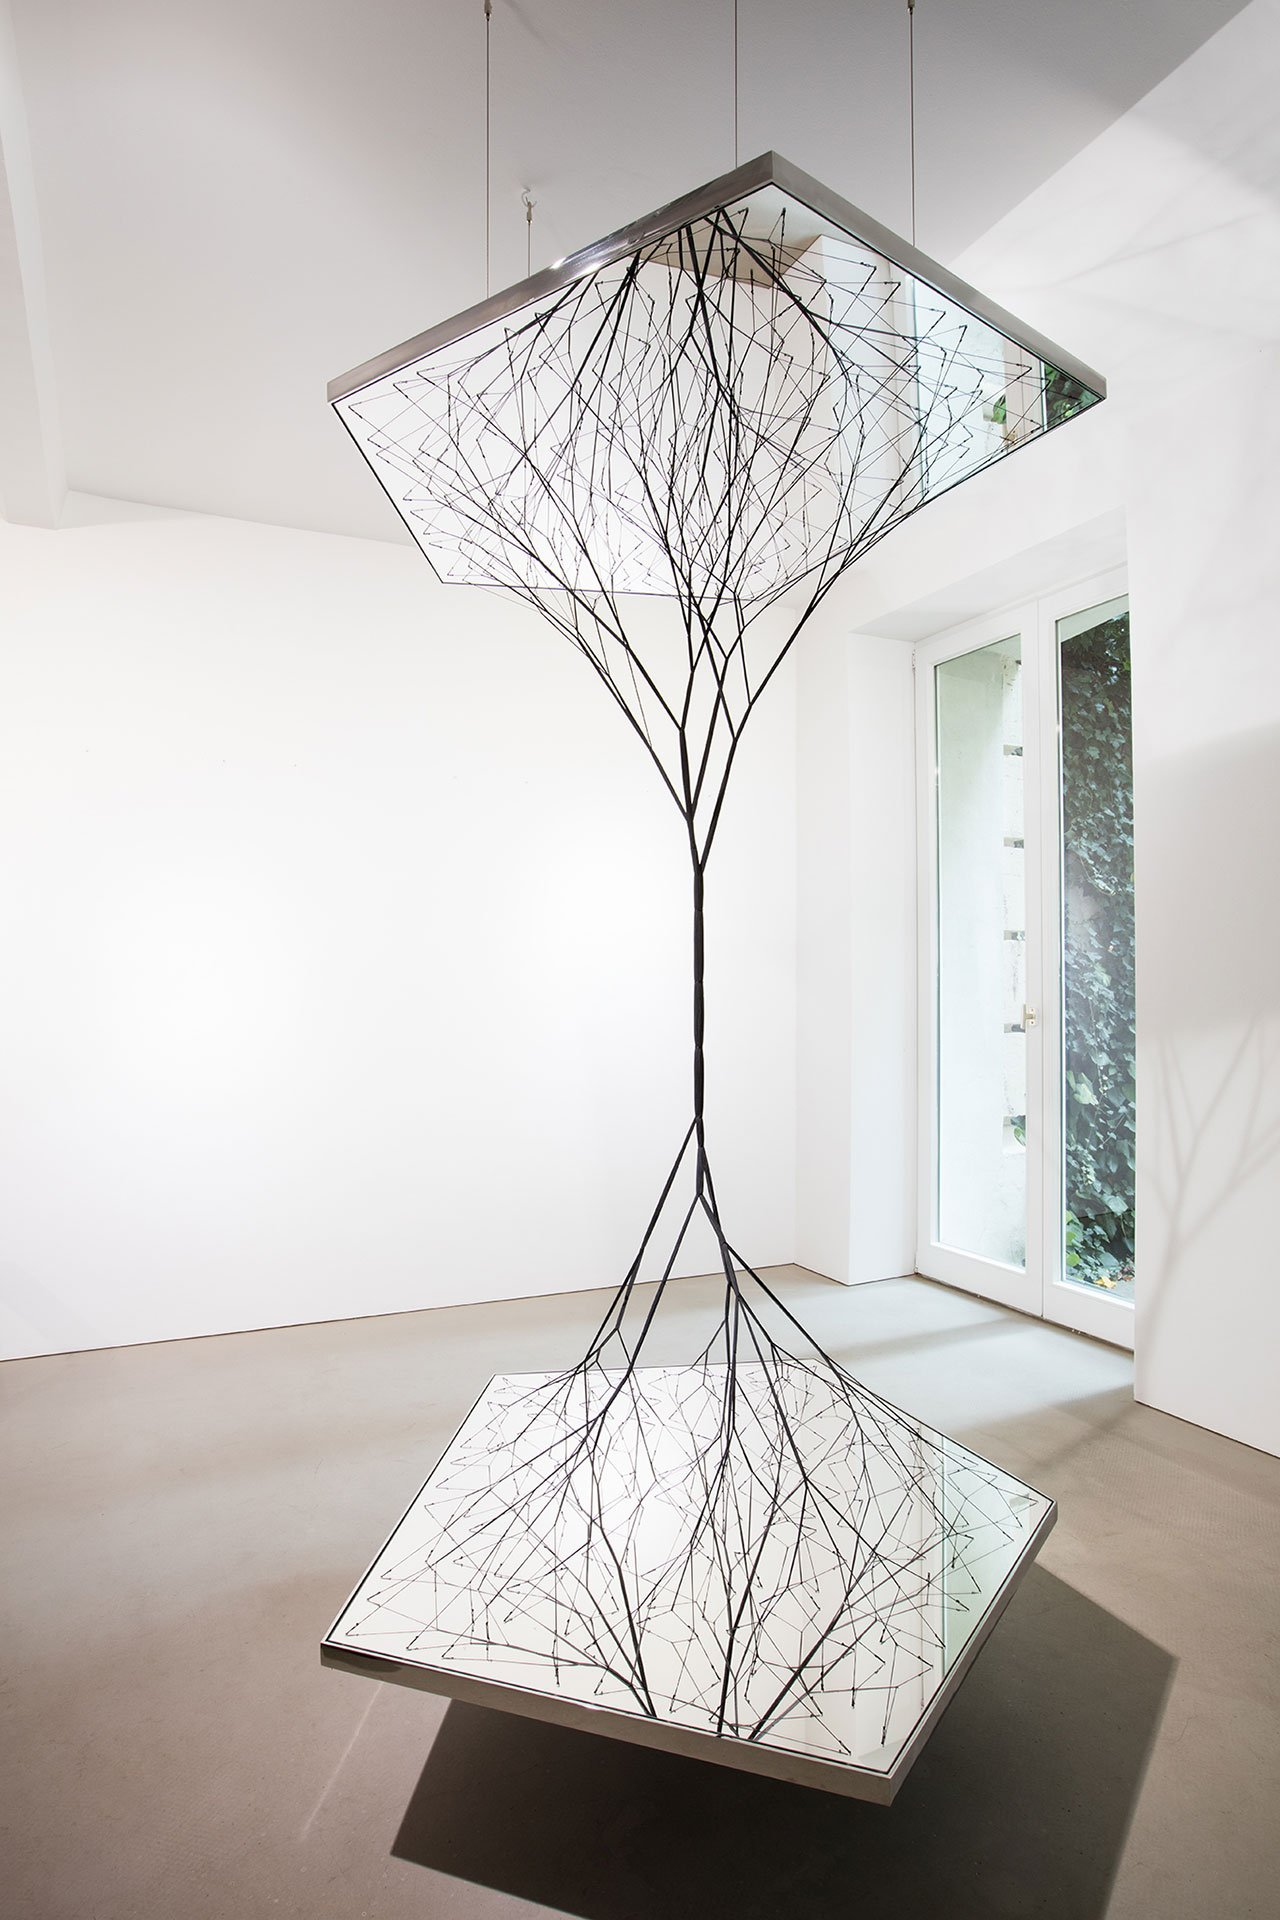 Tomás Saraceno, Connectome, 2013. Rope, threads, mirrors. 165 x 120 x 105 cm. Edition of 3 plus 1 artist proof #3/3. Photo © Andrea Rossetti.